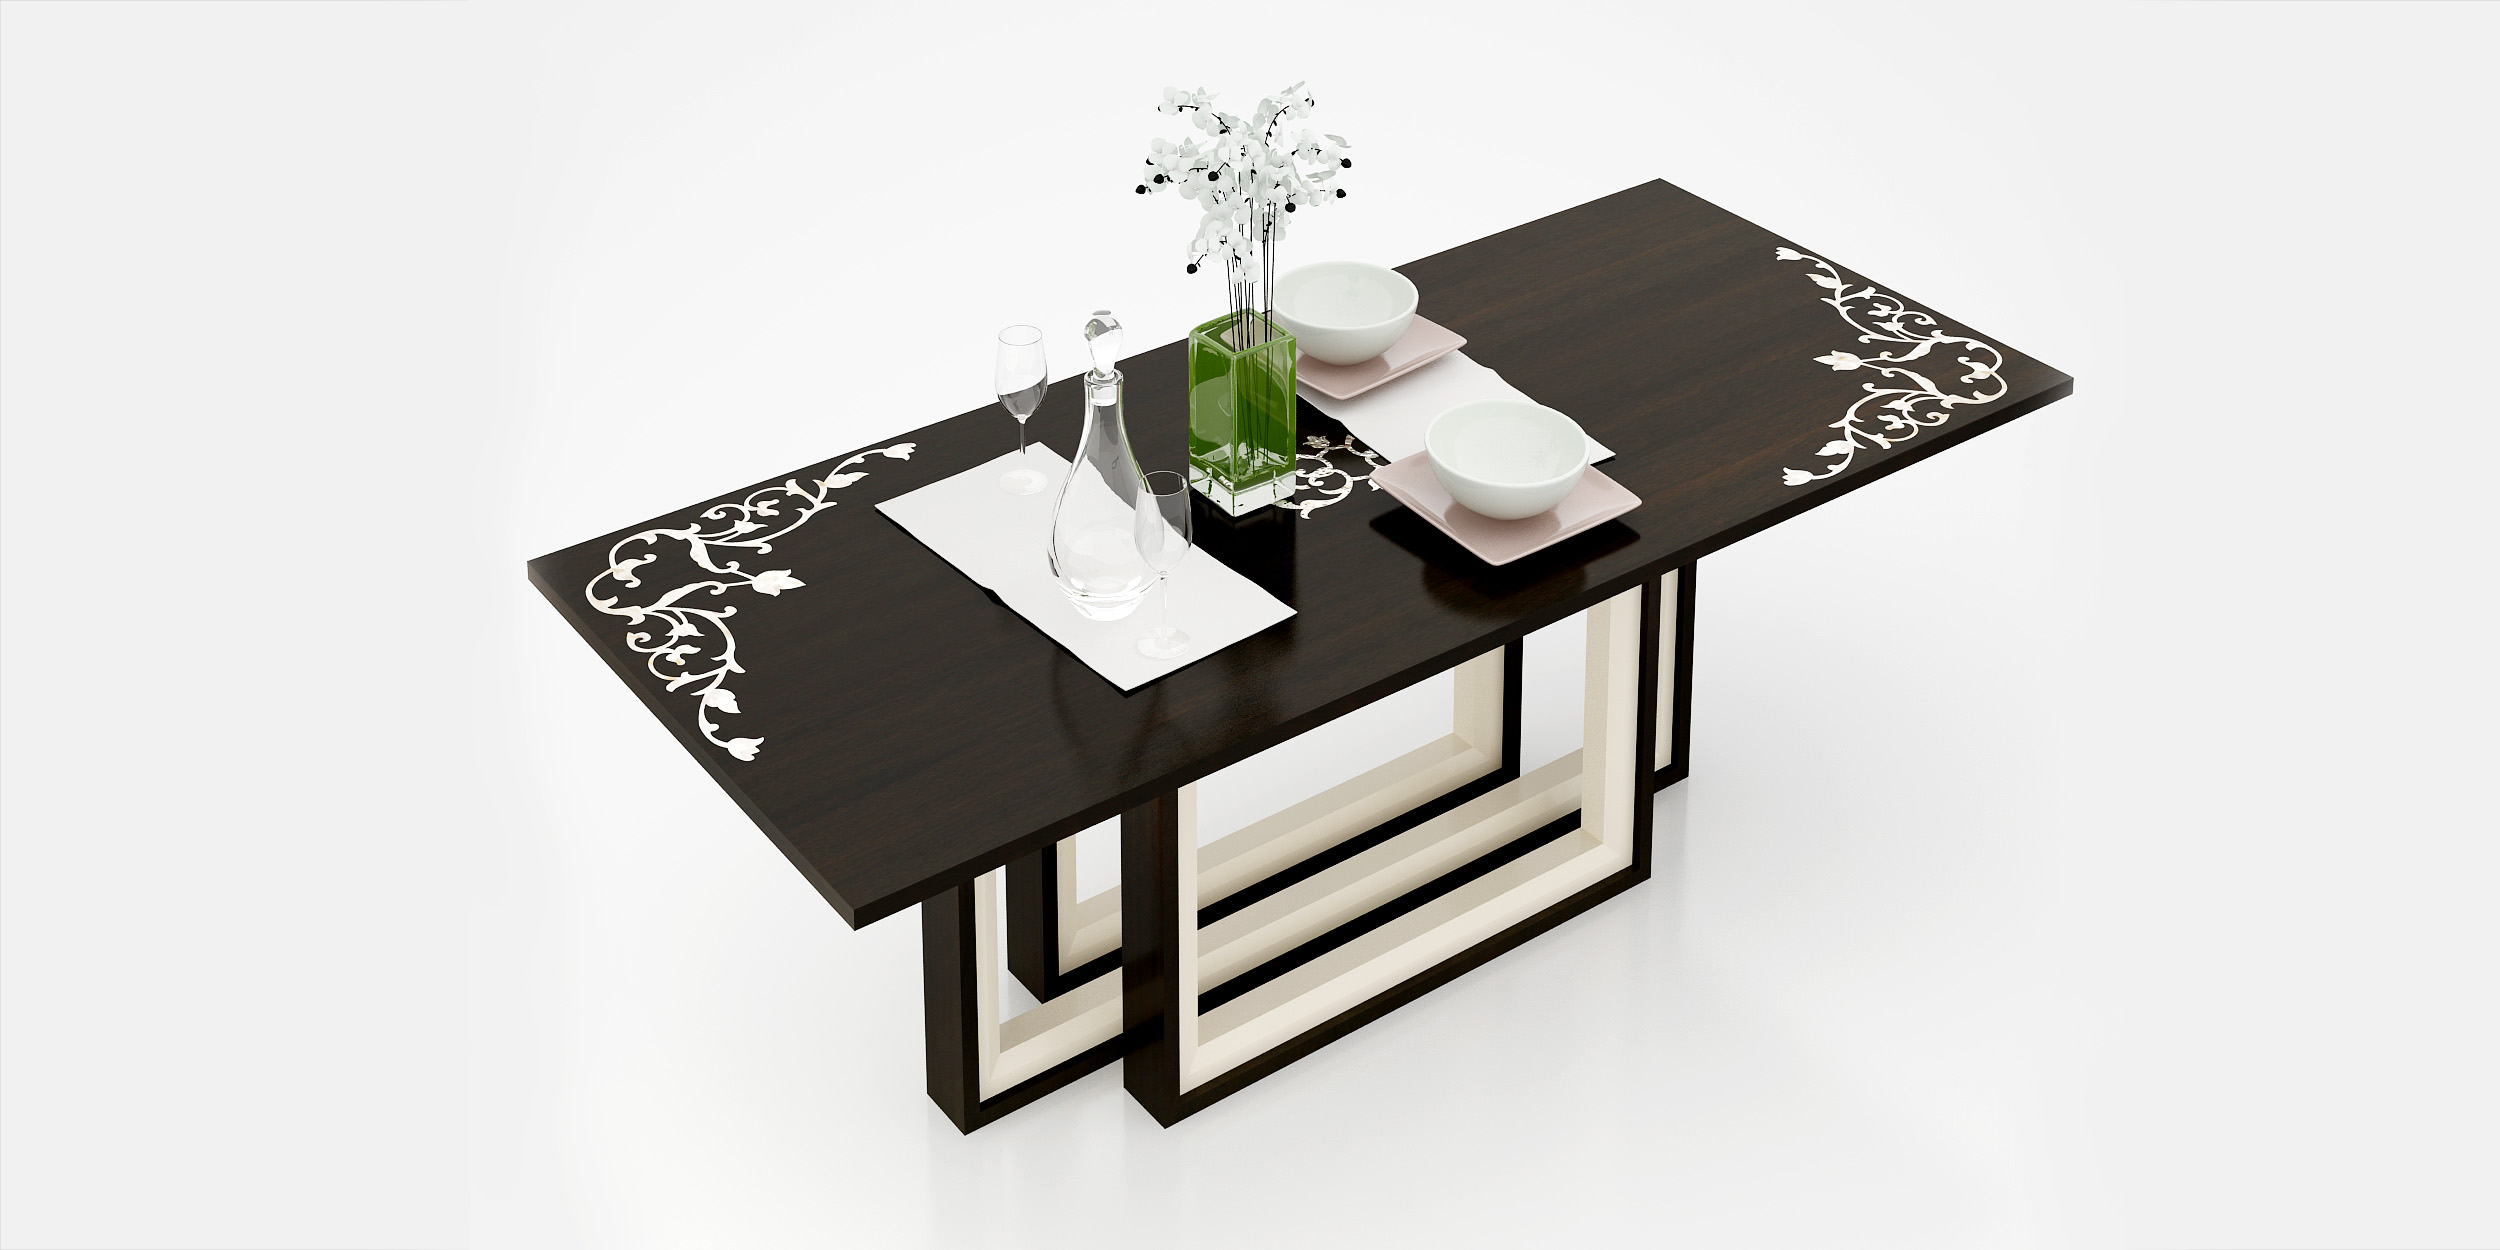 1497251554pelargonium_table_01.jpg